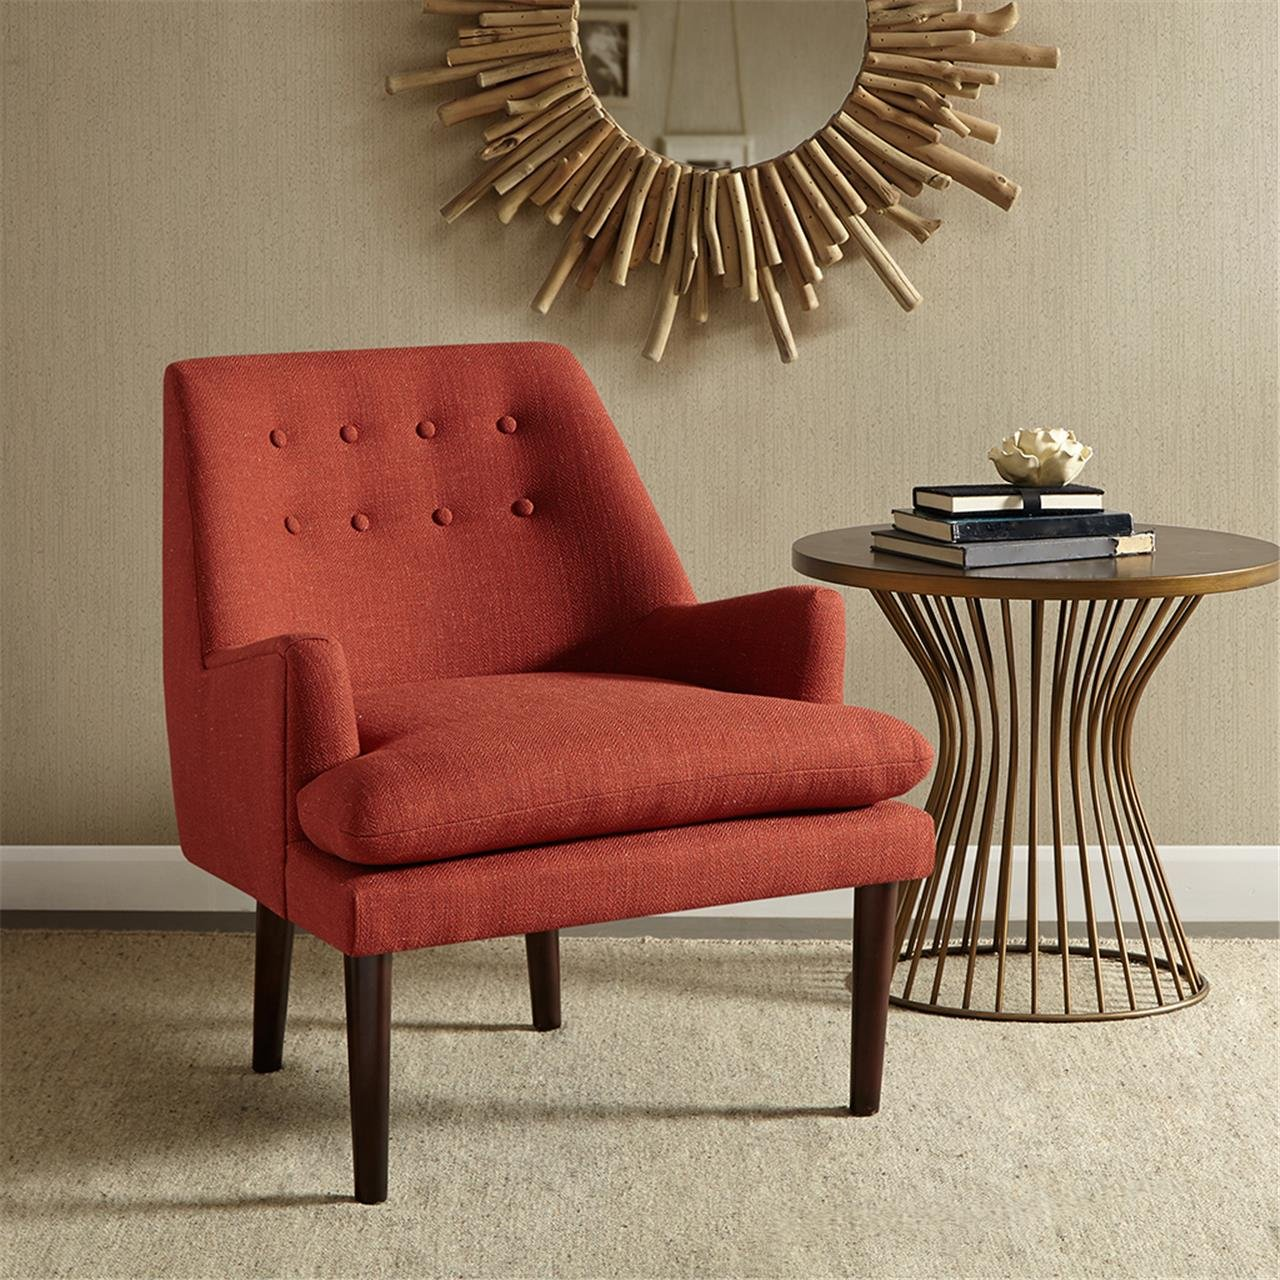 Amazon.com: Madison Park FPF18 0254 Taylor Accent Chair: Kitchen U0026 Dining